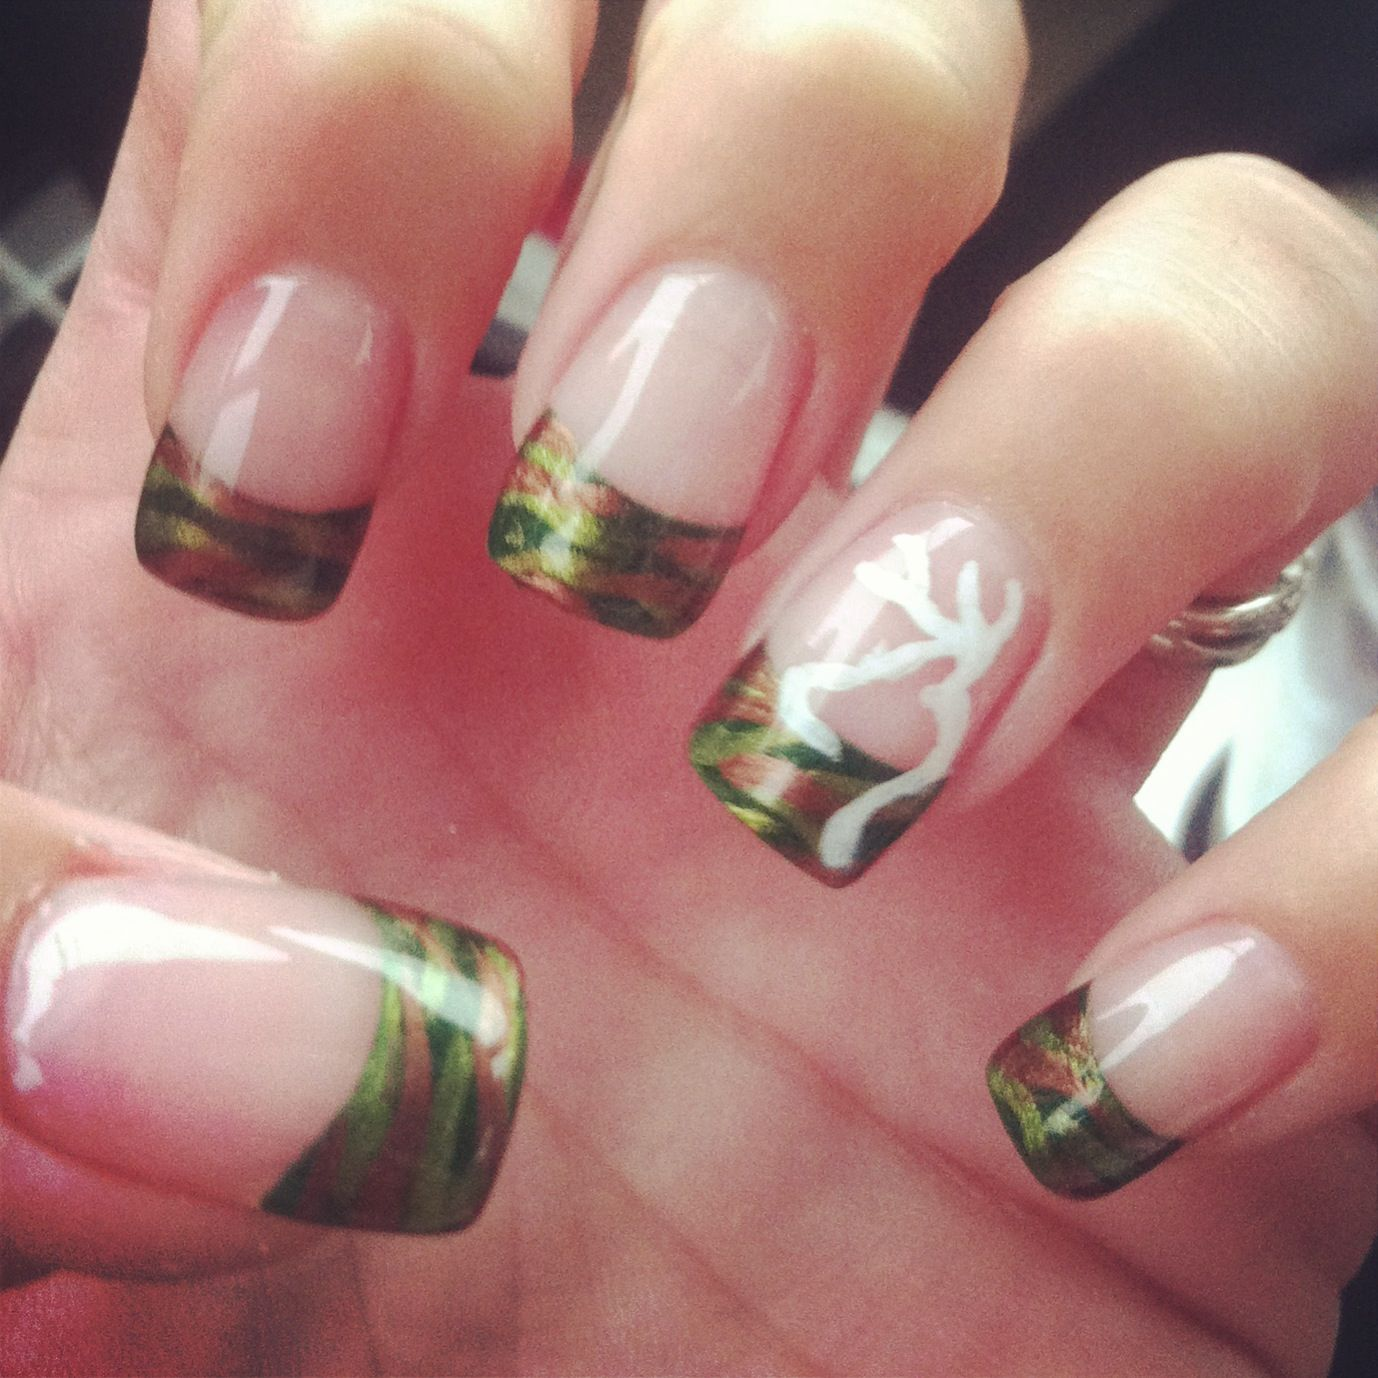 Camo Nails . I want to get my nails done like this | NAIL ART ...